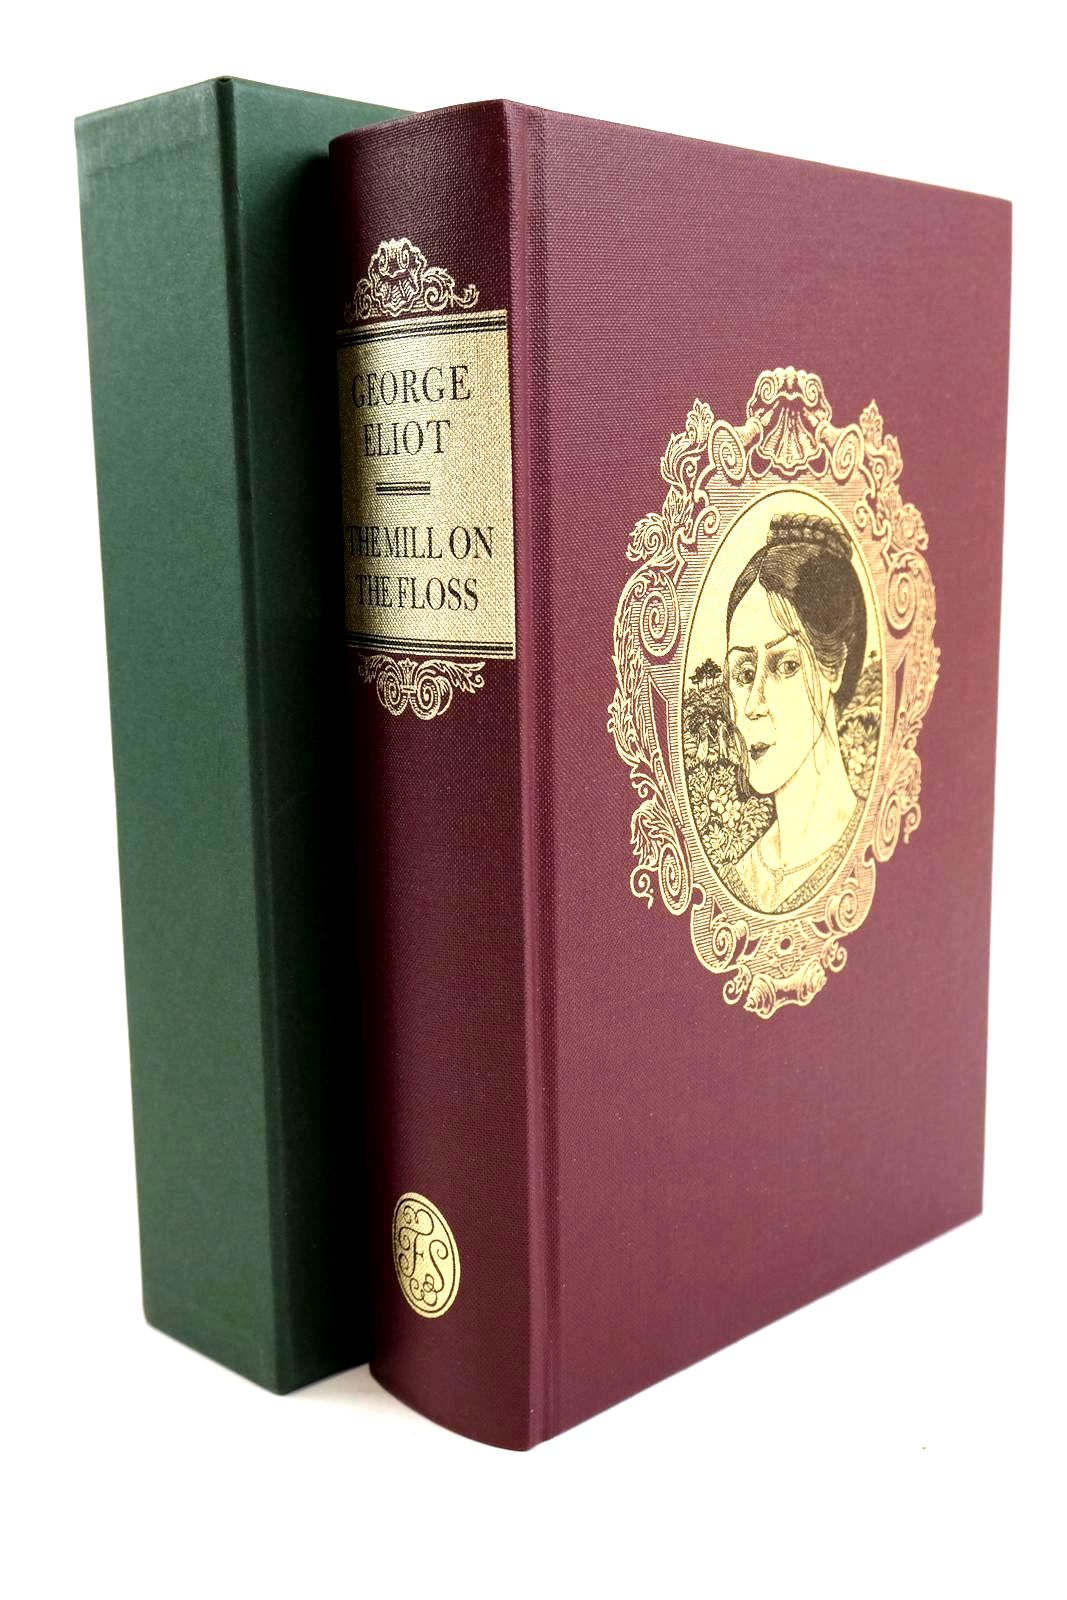 Photo of THE MILL ON THE FLOSS written by Eliot, George illustrated by Stephens, Ian published by Folio Society (STOCK CODE: 1320189)  for sale by Stella & Rose's Books